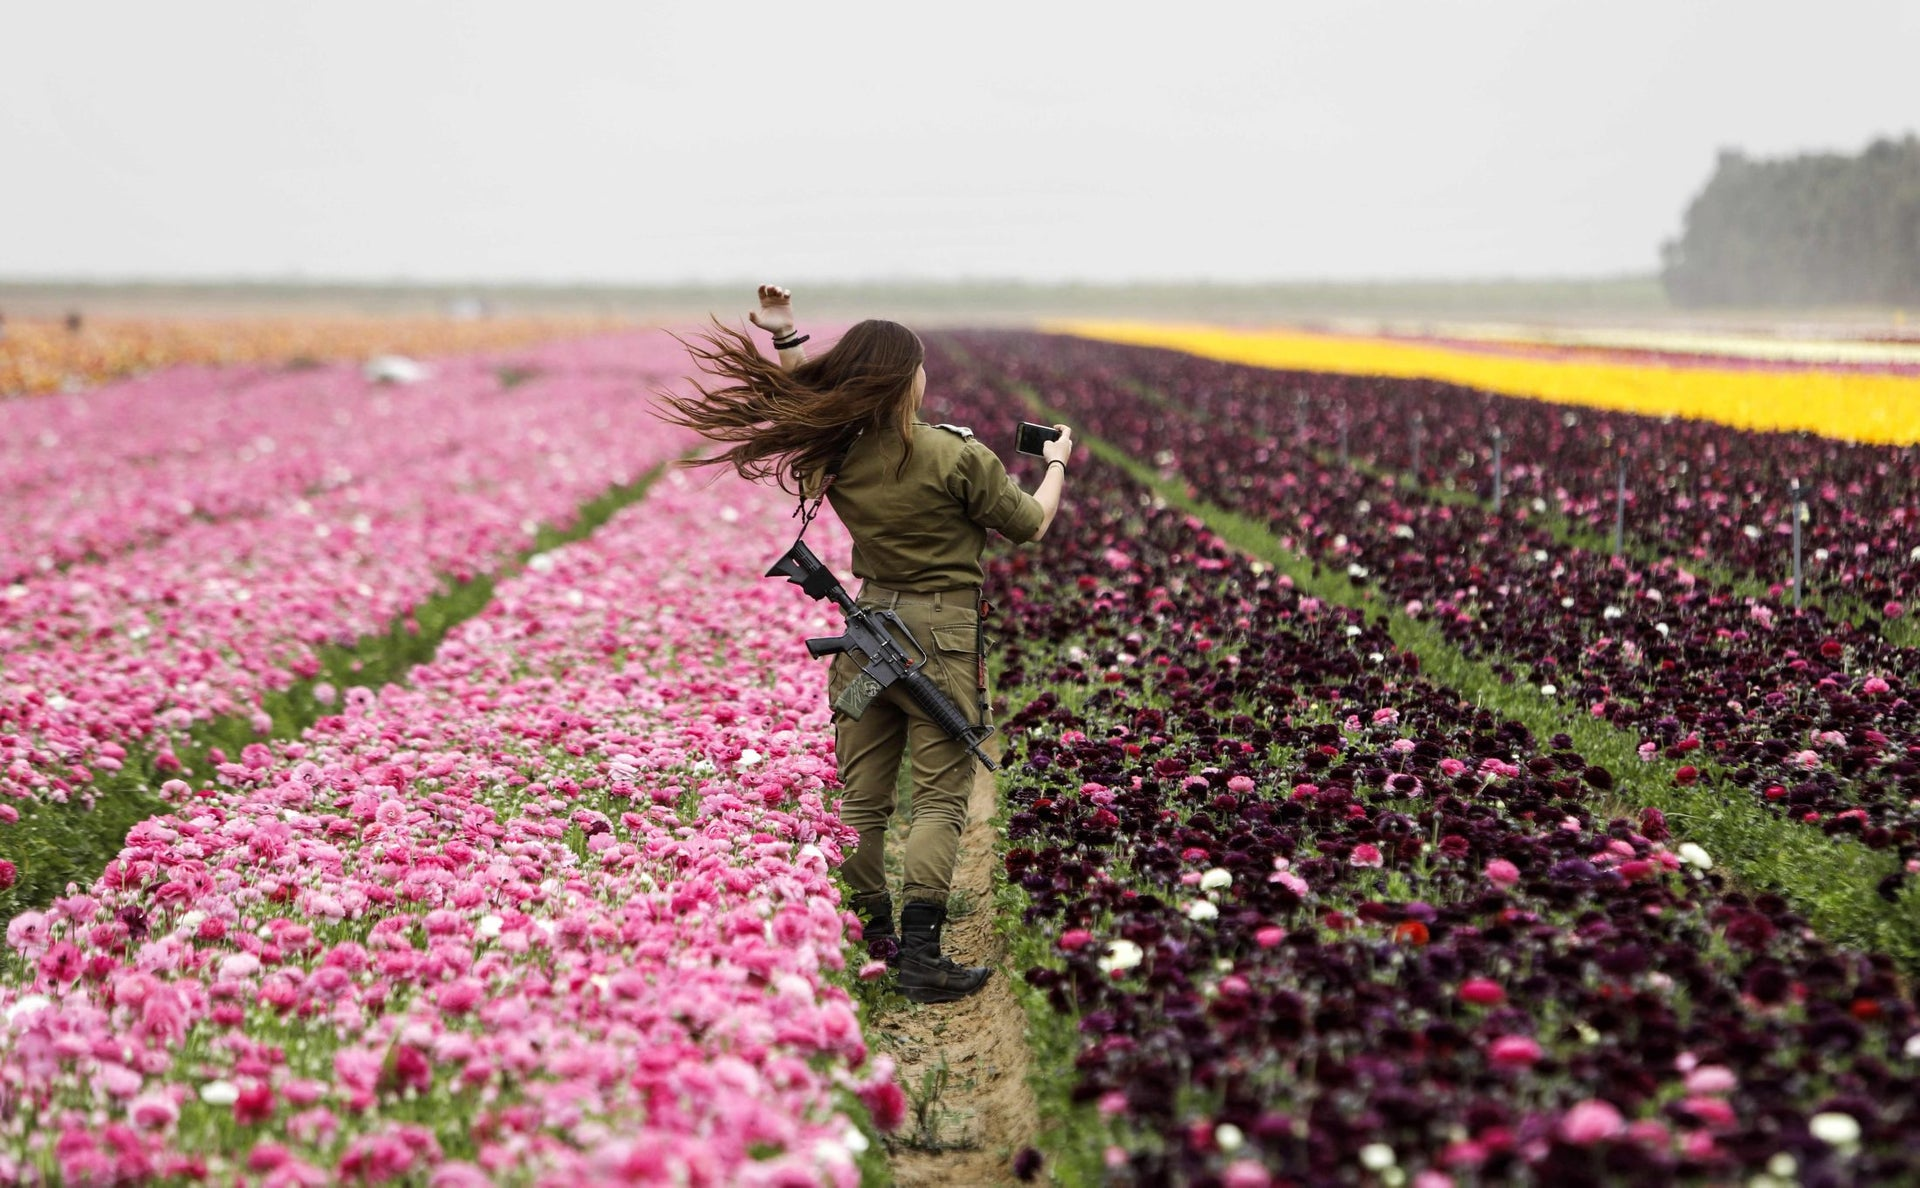 An Israeli soldier looks through her cell phone as she enjoys the Ranunculus flowers in a field in the southern Israeli Kibbutz of Nir Yitzhak, located along the Israeli-Gaza Strip border, during the Jewish holiday of Pesach (Passover) on April 12, 2017.